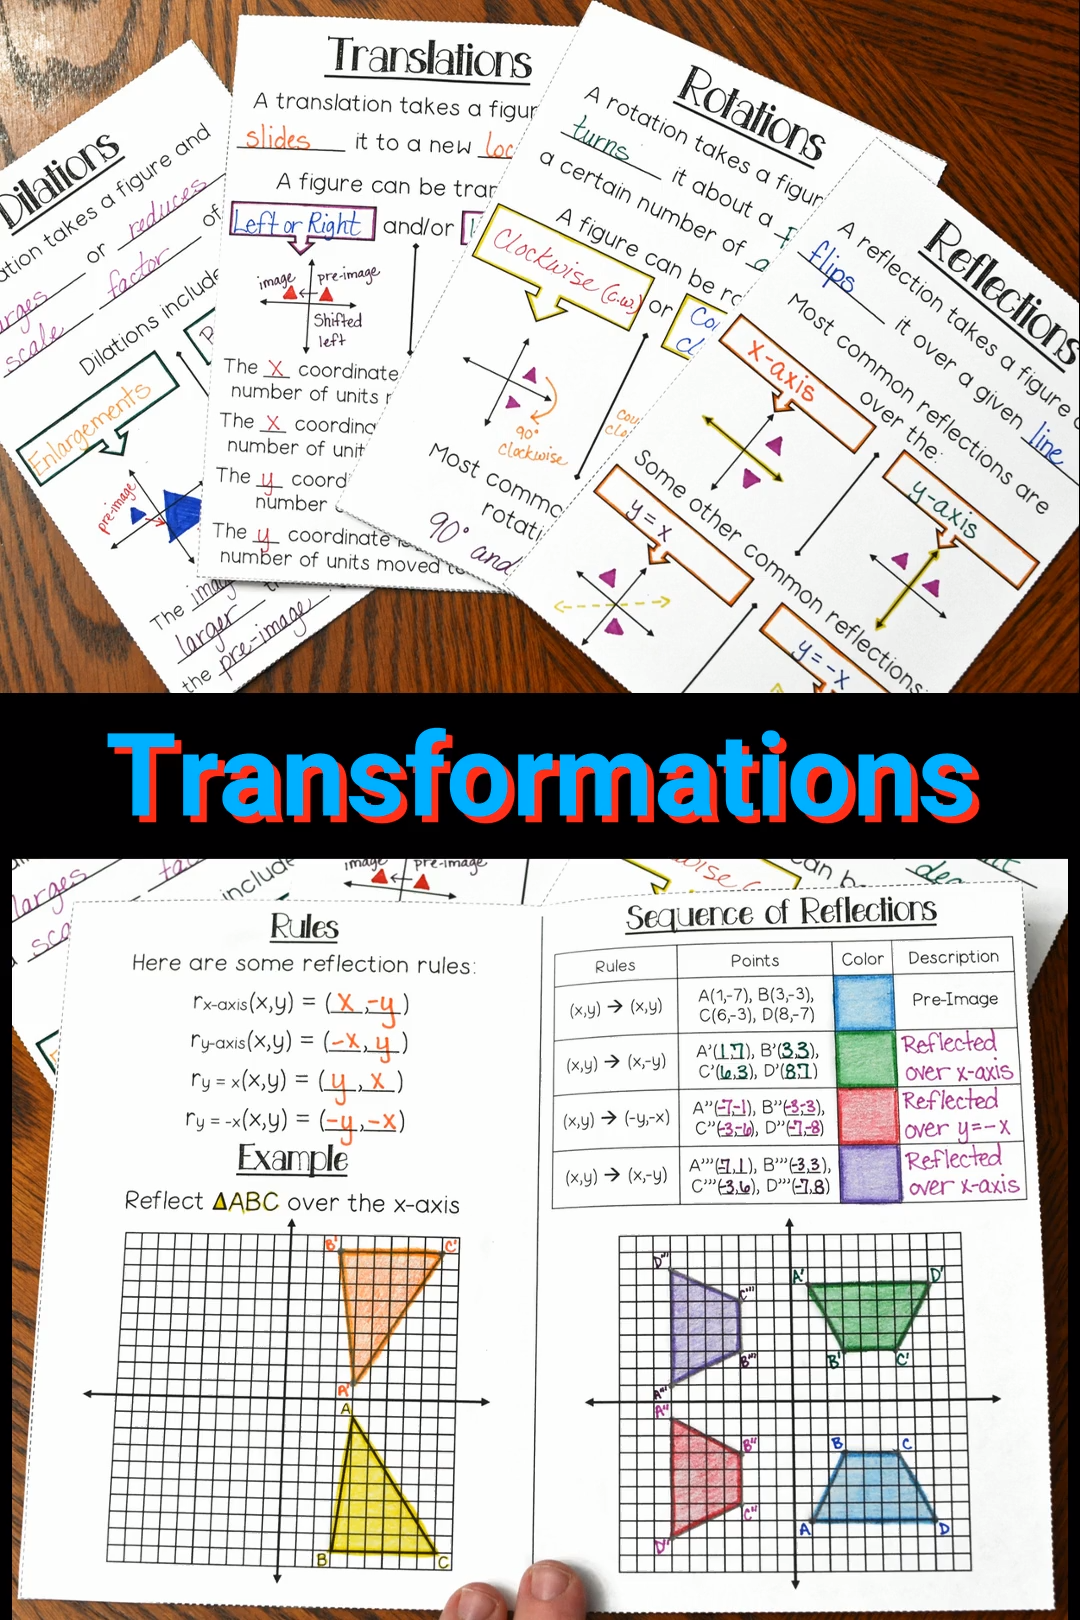 Transformations Booklet Video Transformations Math Math Resources Reflection Math [ 1620 x 1080 Pixel ]